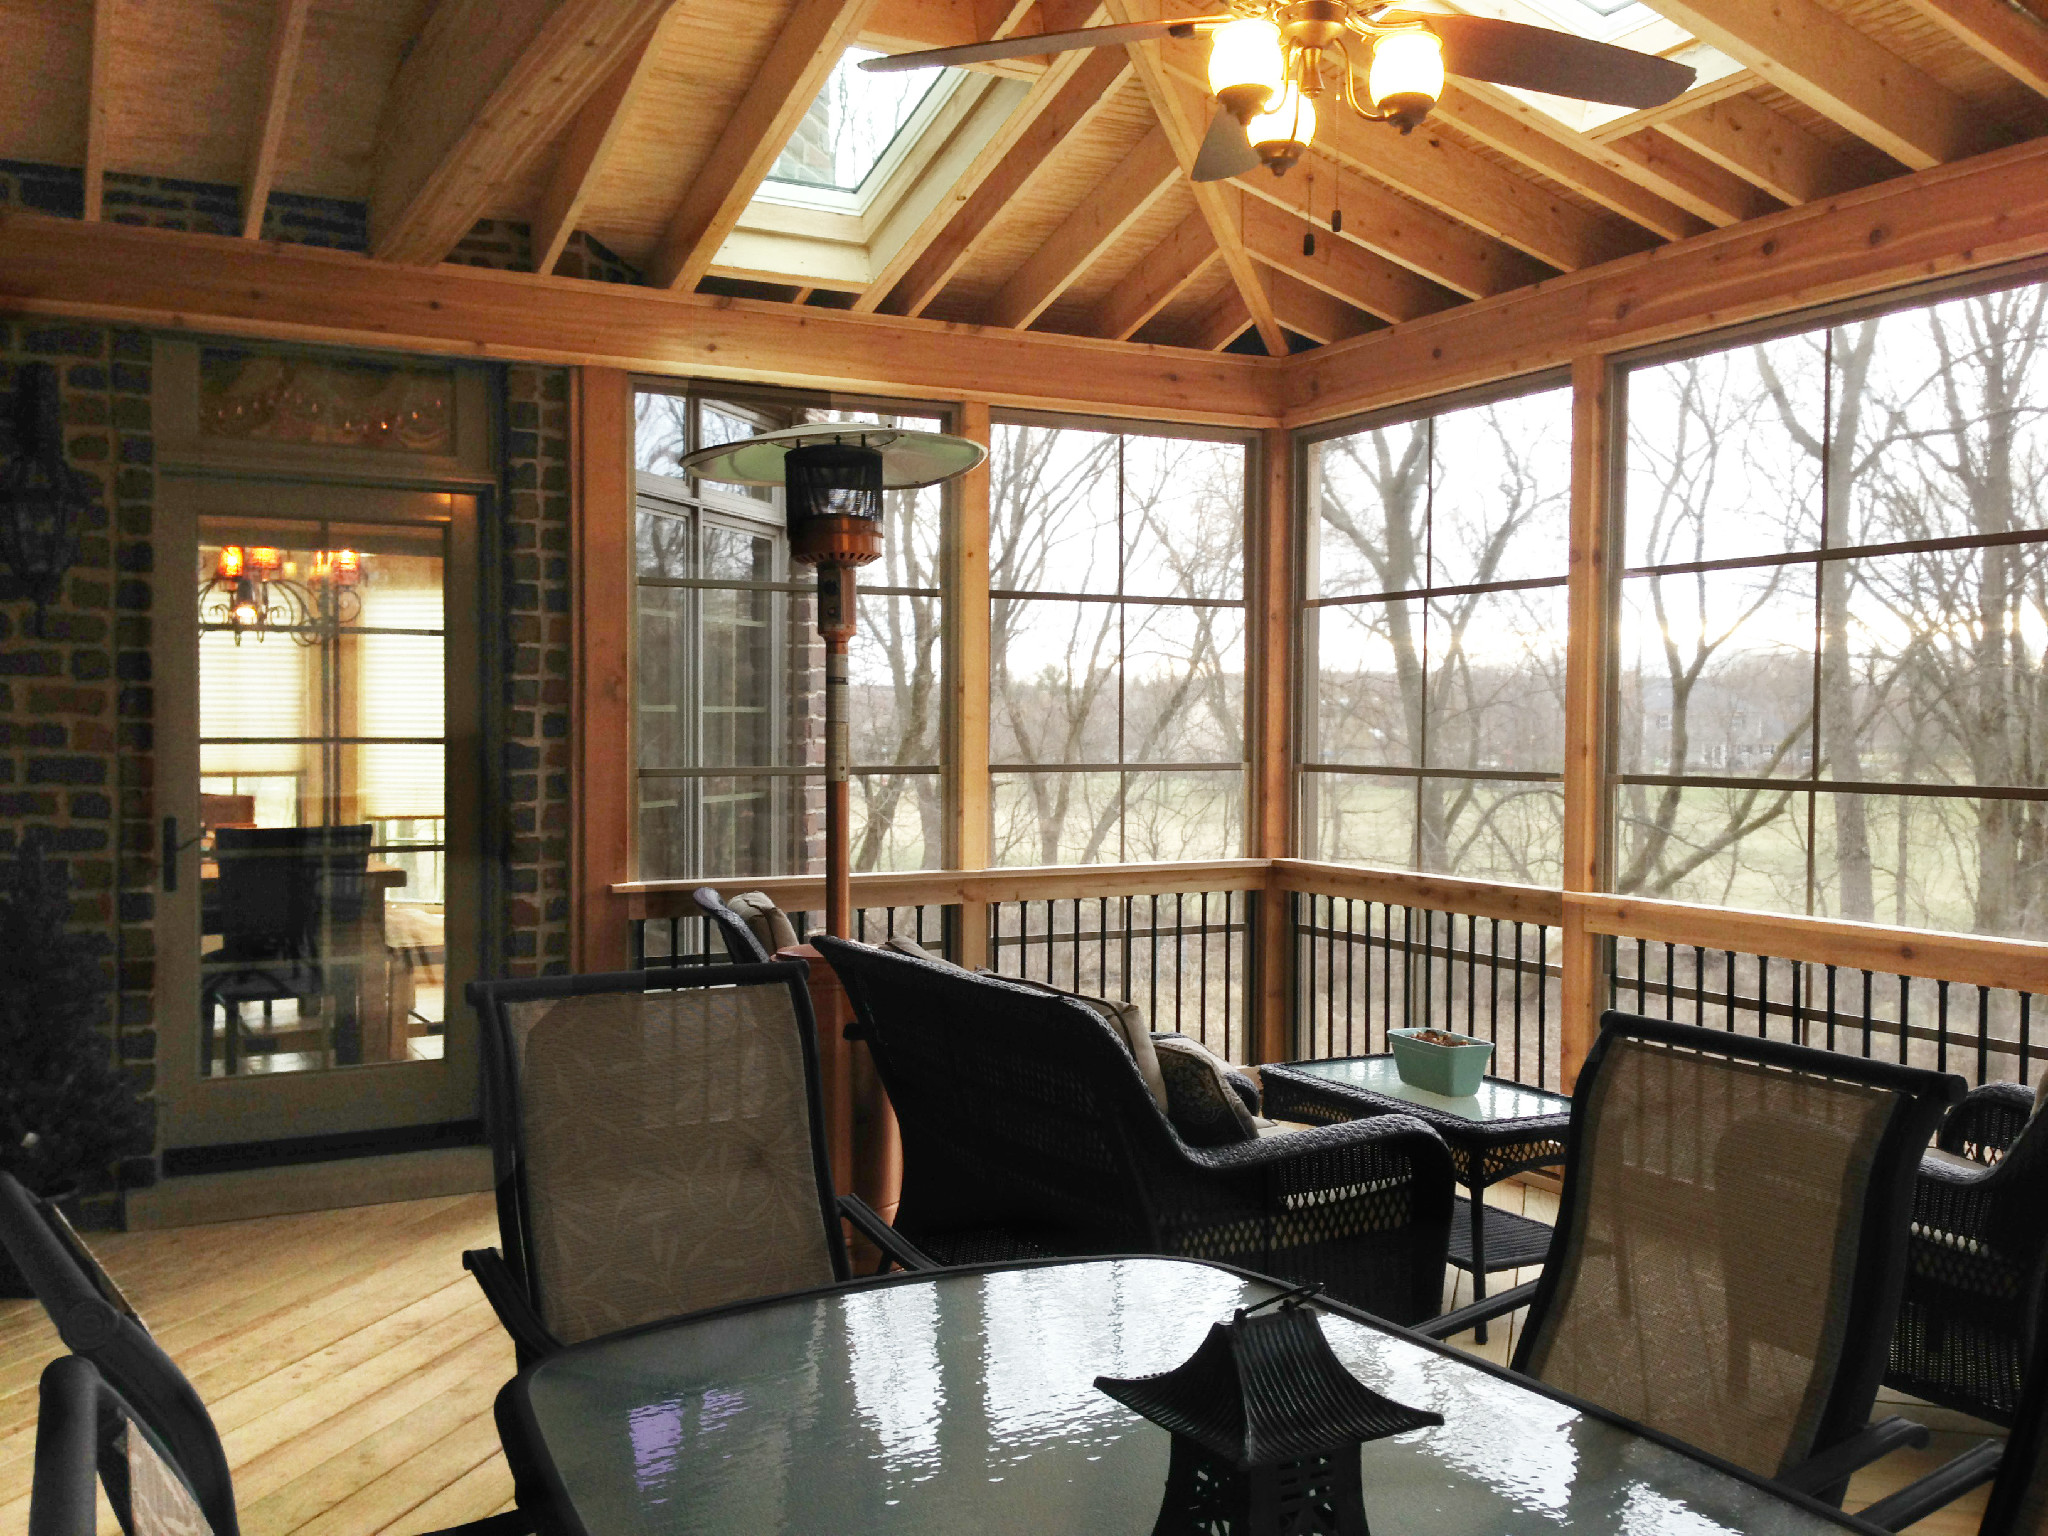 Roof Design Ideas: What Roof Style Should Your New Chicagoland Porch Or